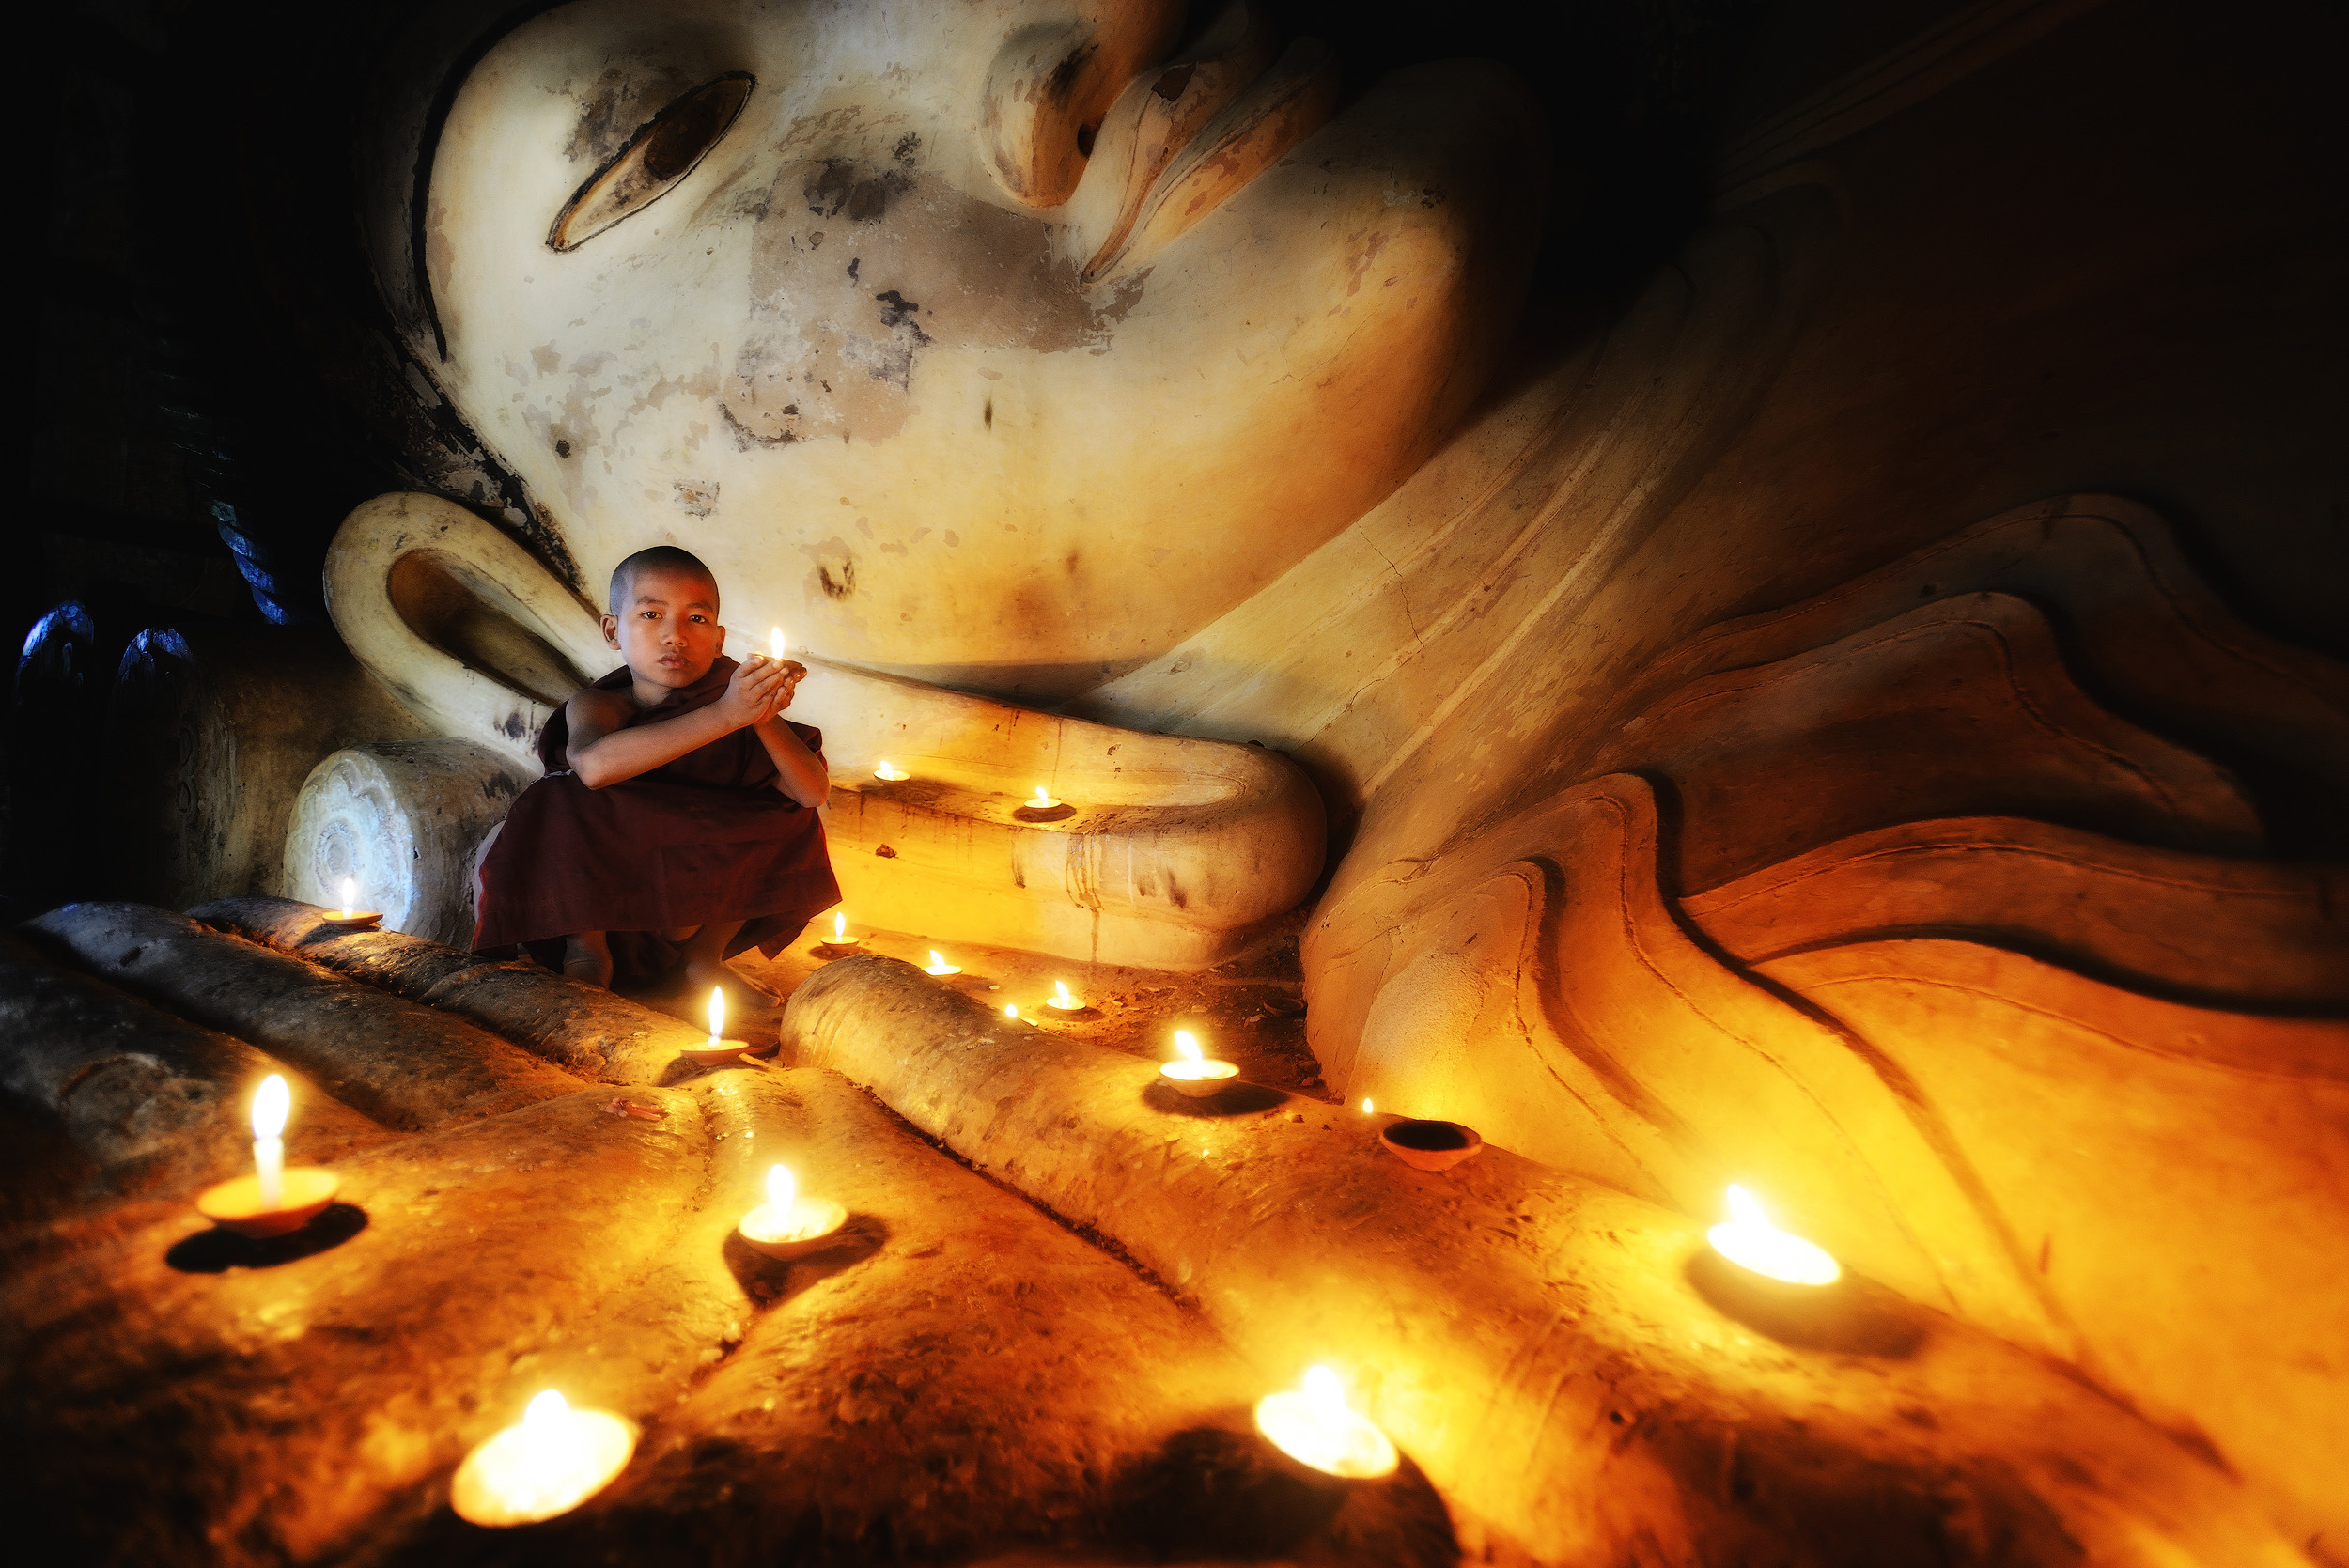 """Prayer   A shot of a novice monk in front of the reclining buddha at Shwesandaw Paya, Bagan. As we entered the tiny building where the buddha is located we came across a photographer shooting this scene. It's not a """"natural"""" scene, as the photographer, who was shooting a book in Burma, had a guide who'd set up the scene for him complete with local novice monks who were carefully posed and lit. The photographer invited me to take a shot of the scene and even though I'm generally not a big fan of contrived posed scenes like this, I wasn't going to decline."""